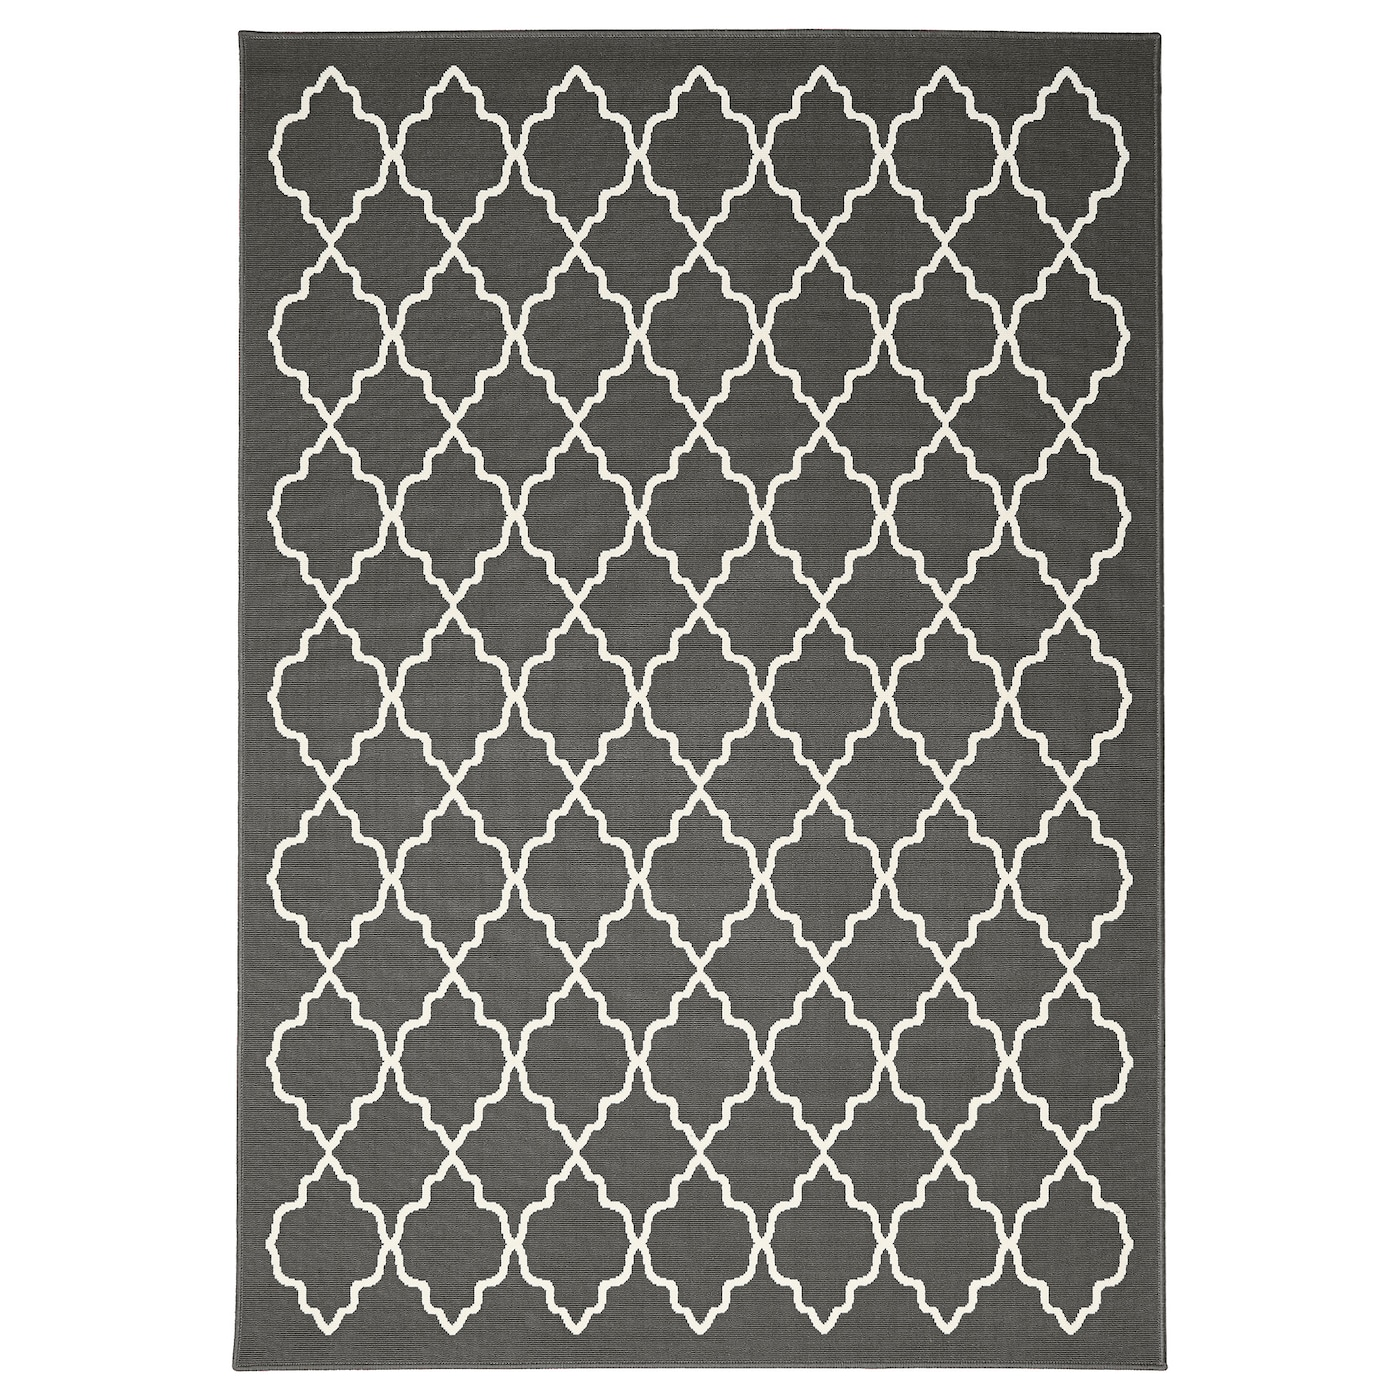 hovslund tapis poils ras gris fonc 160x230 cm ikea. Black Bedroom Furniture Sets. Home Design Ideas